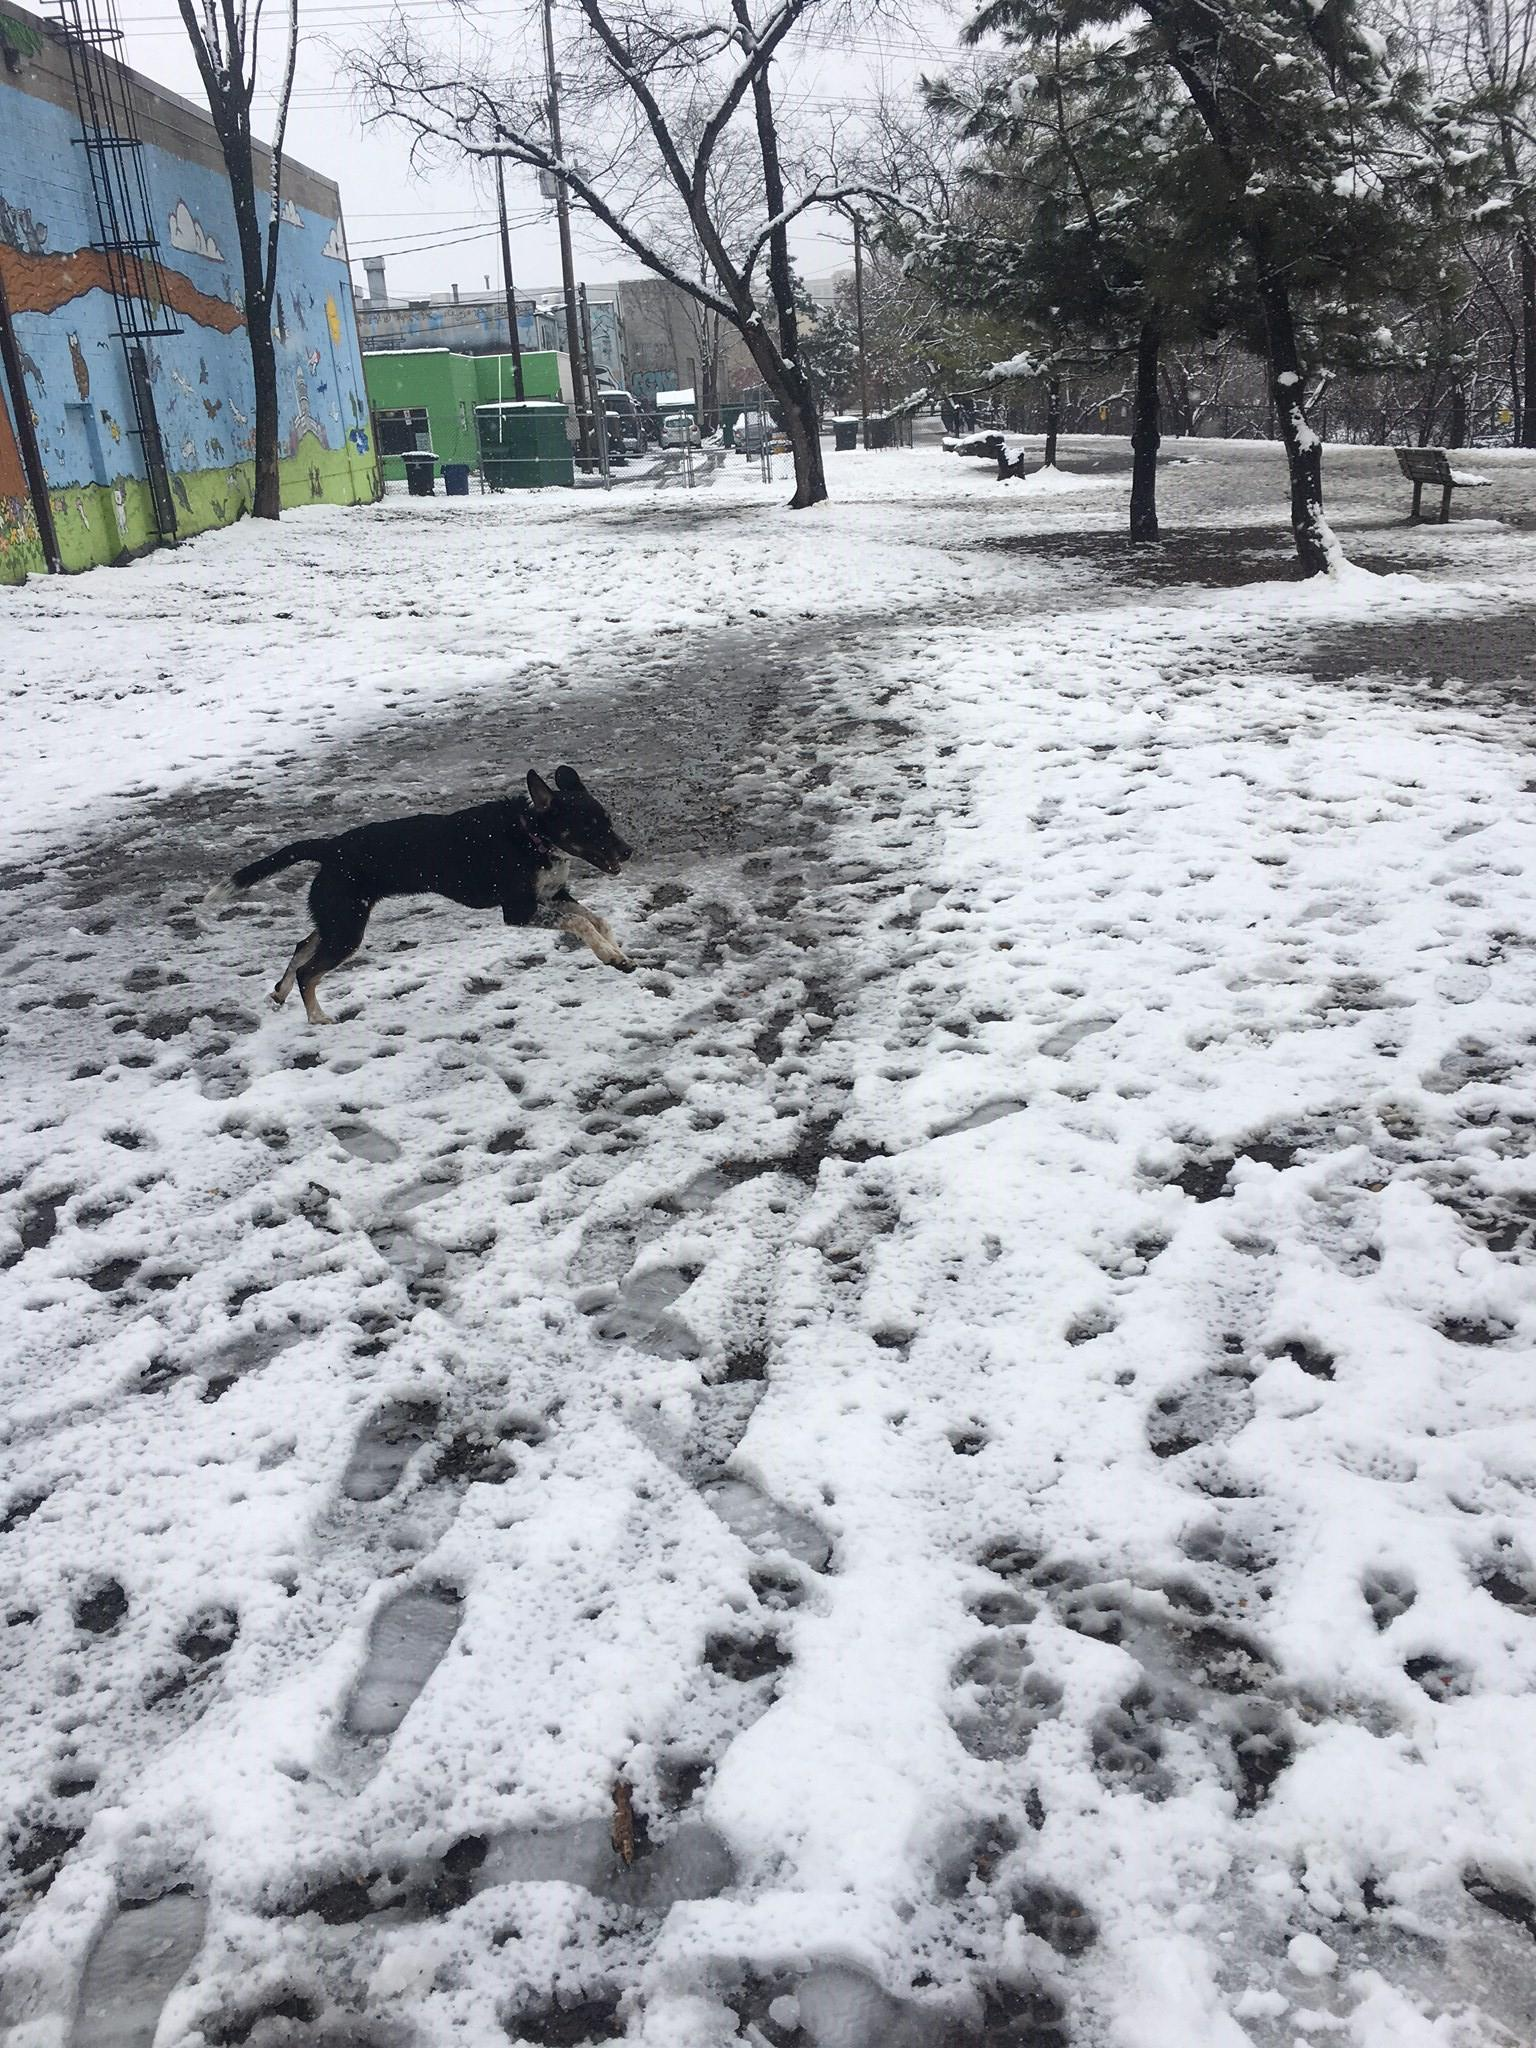 D.C. finally got its first real snowfall of the season -- on March 21! Given that it's the probably the only flakes we'll see for a while, the pups of the DMV decided to really live it up. Check out a few of the adorable pets we spotted chilling in the snow today!  (Image: Courtesy Clare O'Doherty)